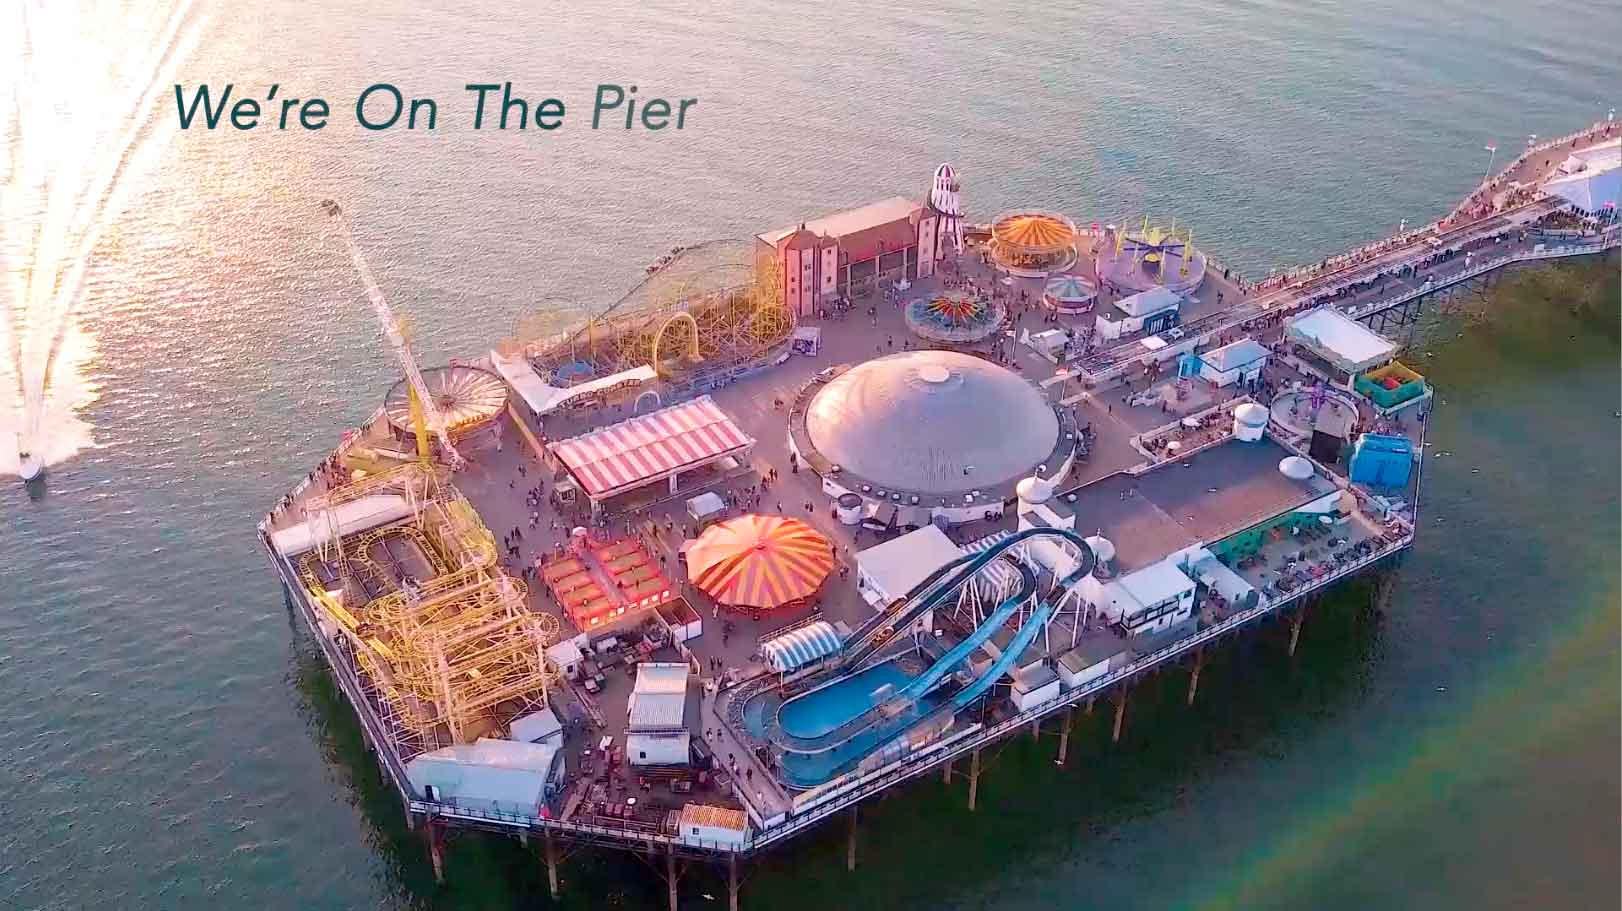 We are on the pier Latest TV